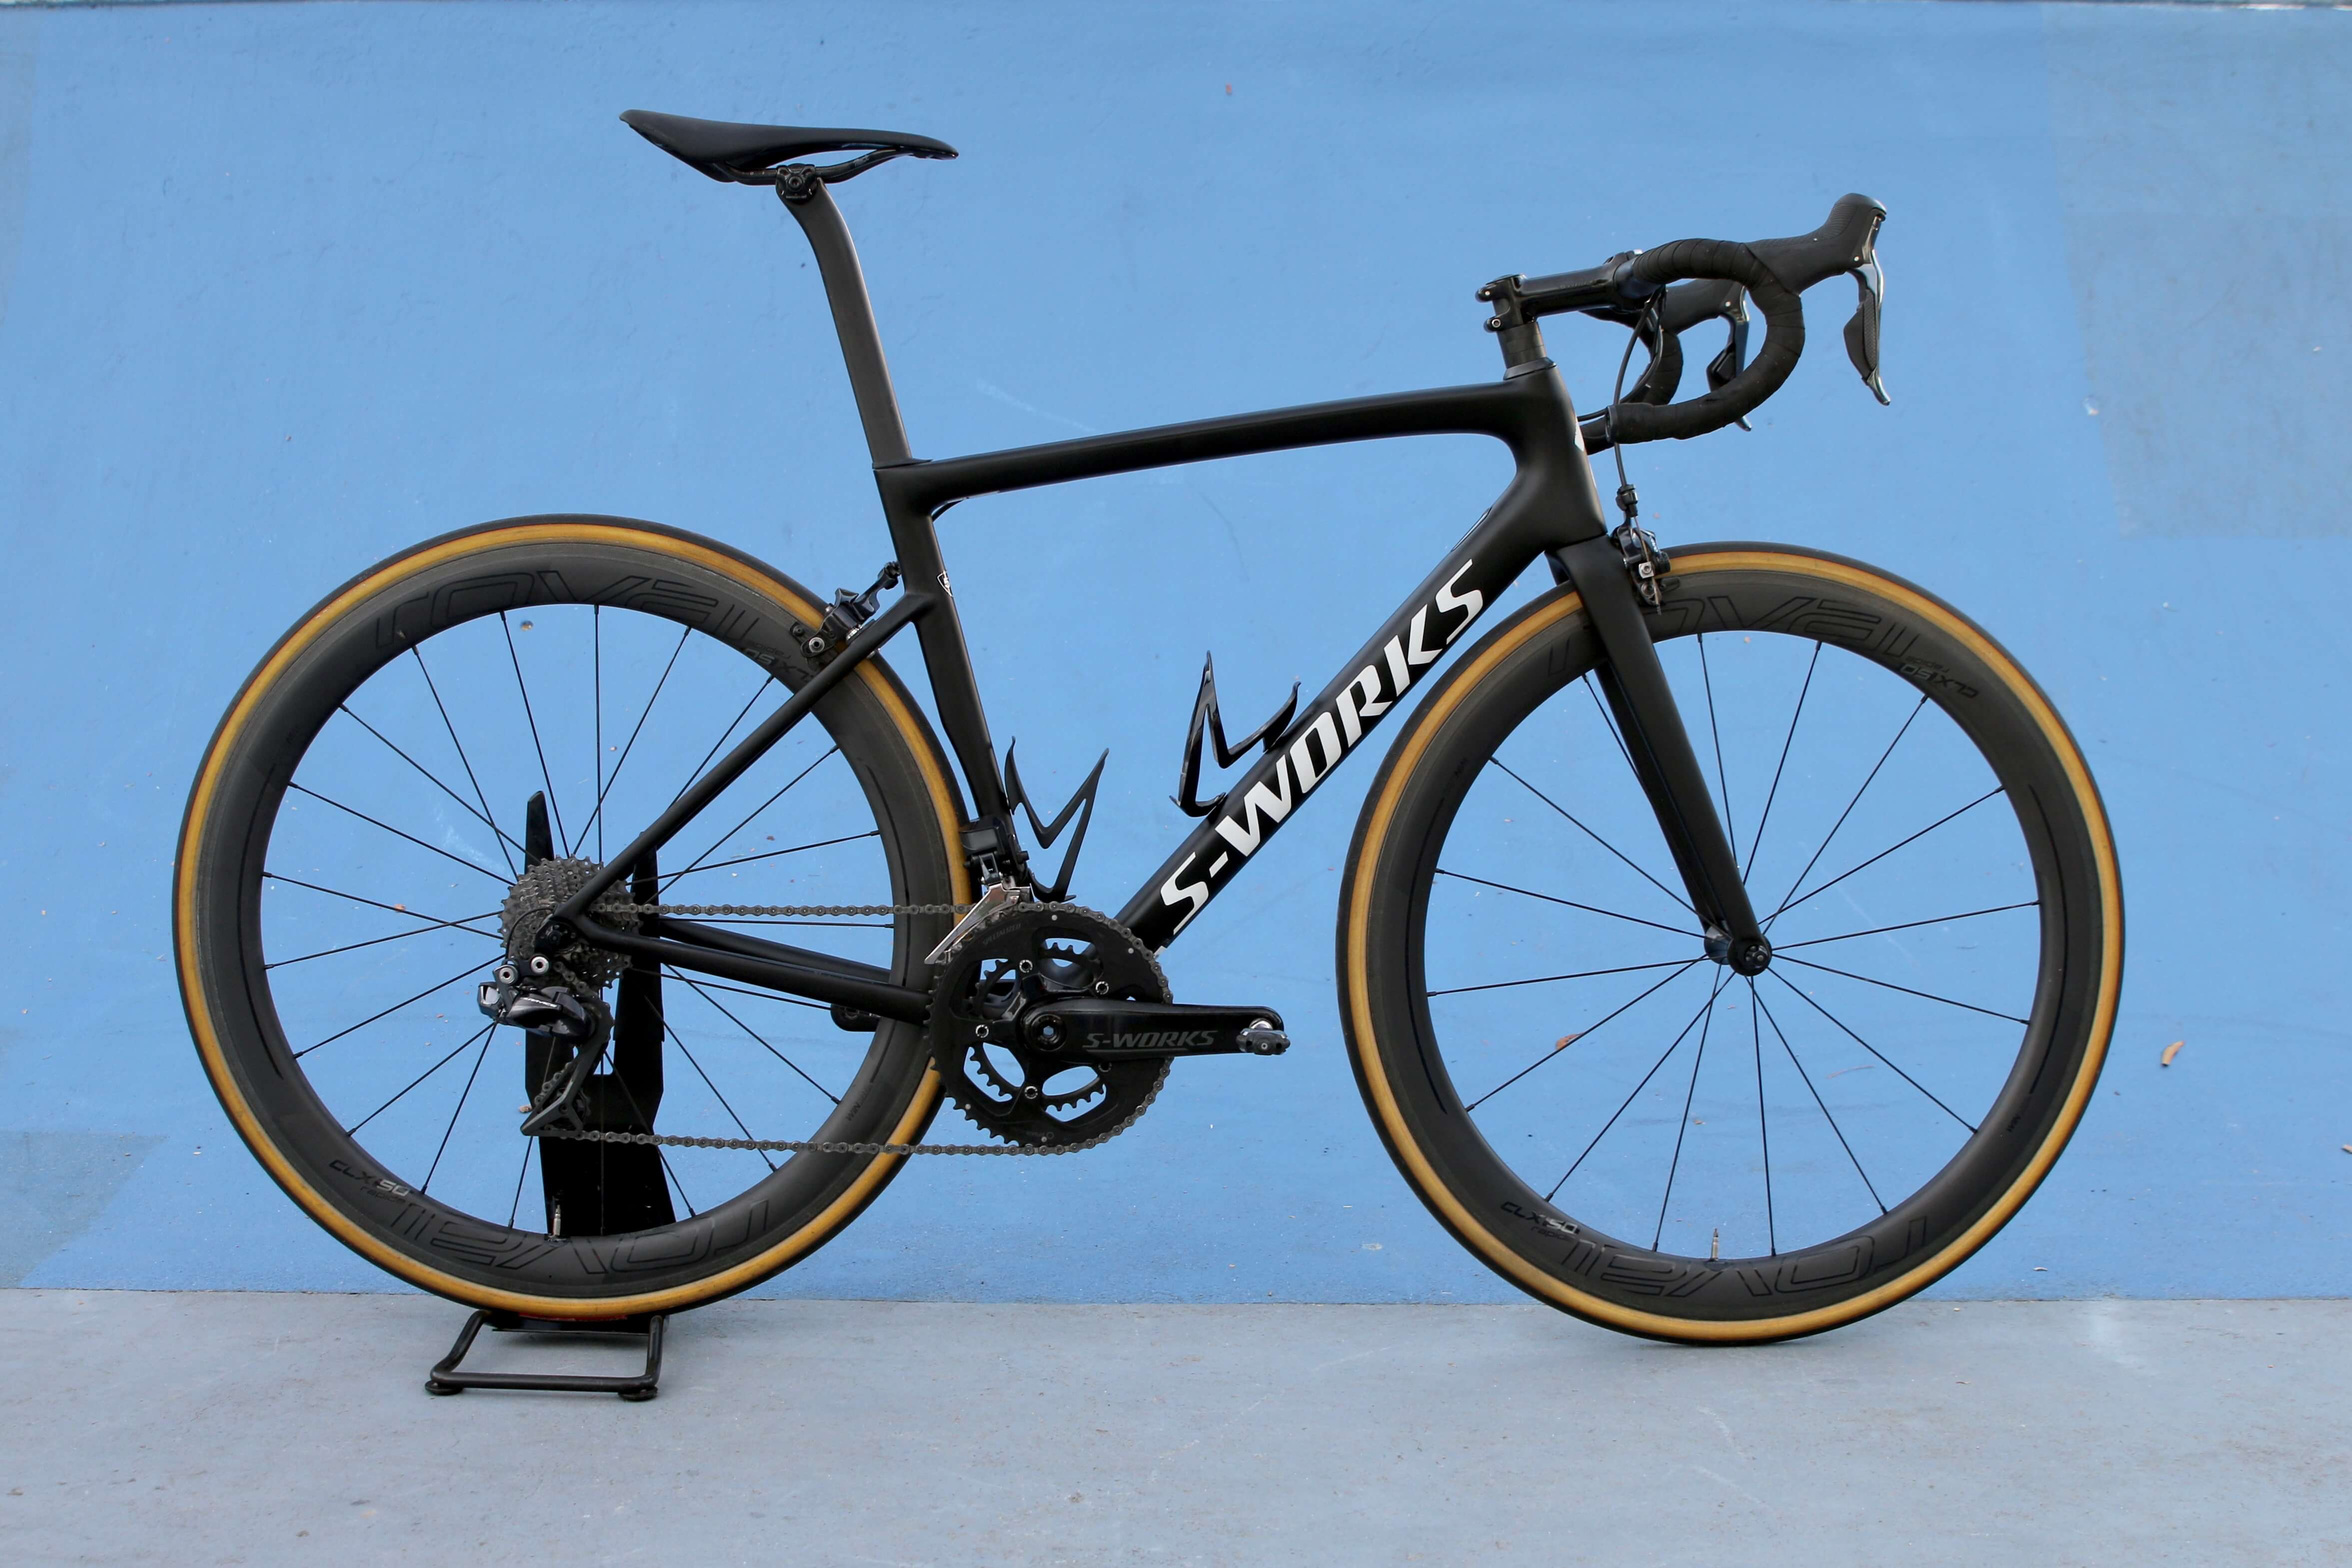 2018 Specialised s works tarmac review